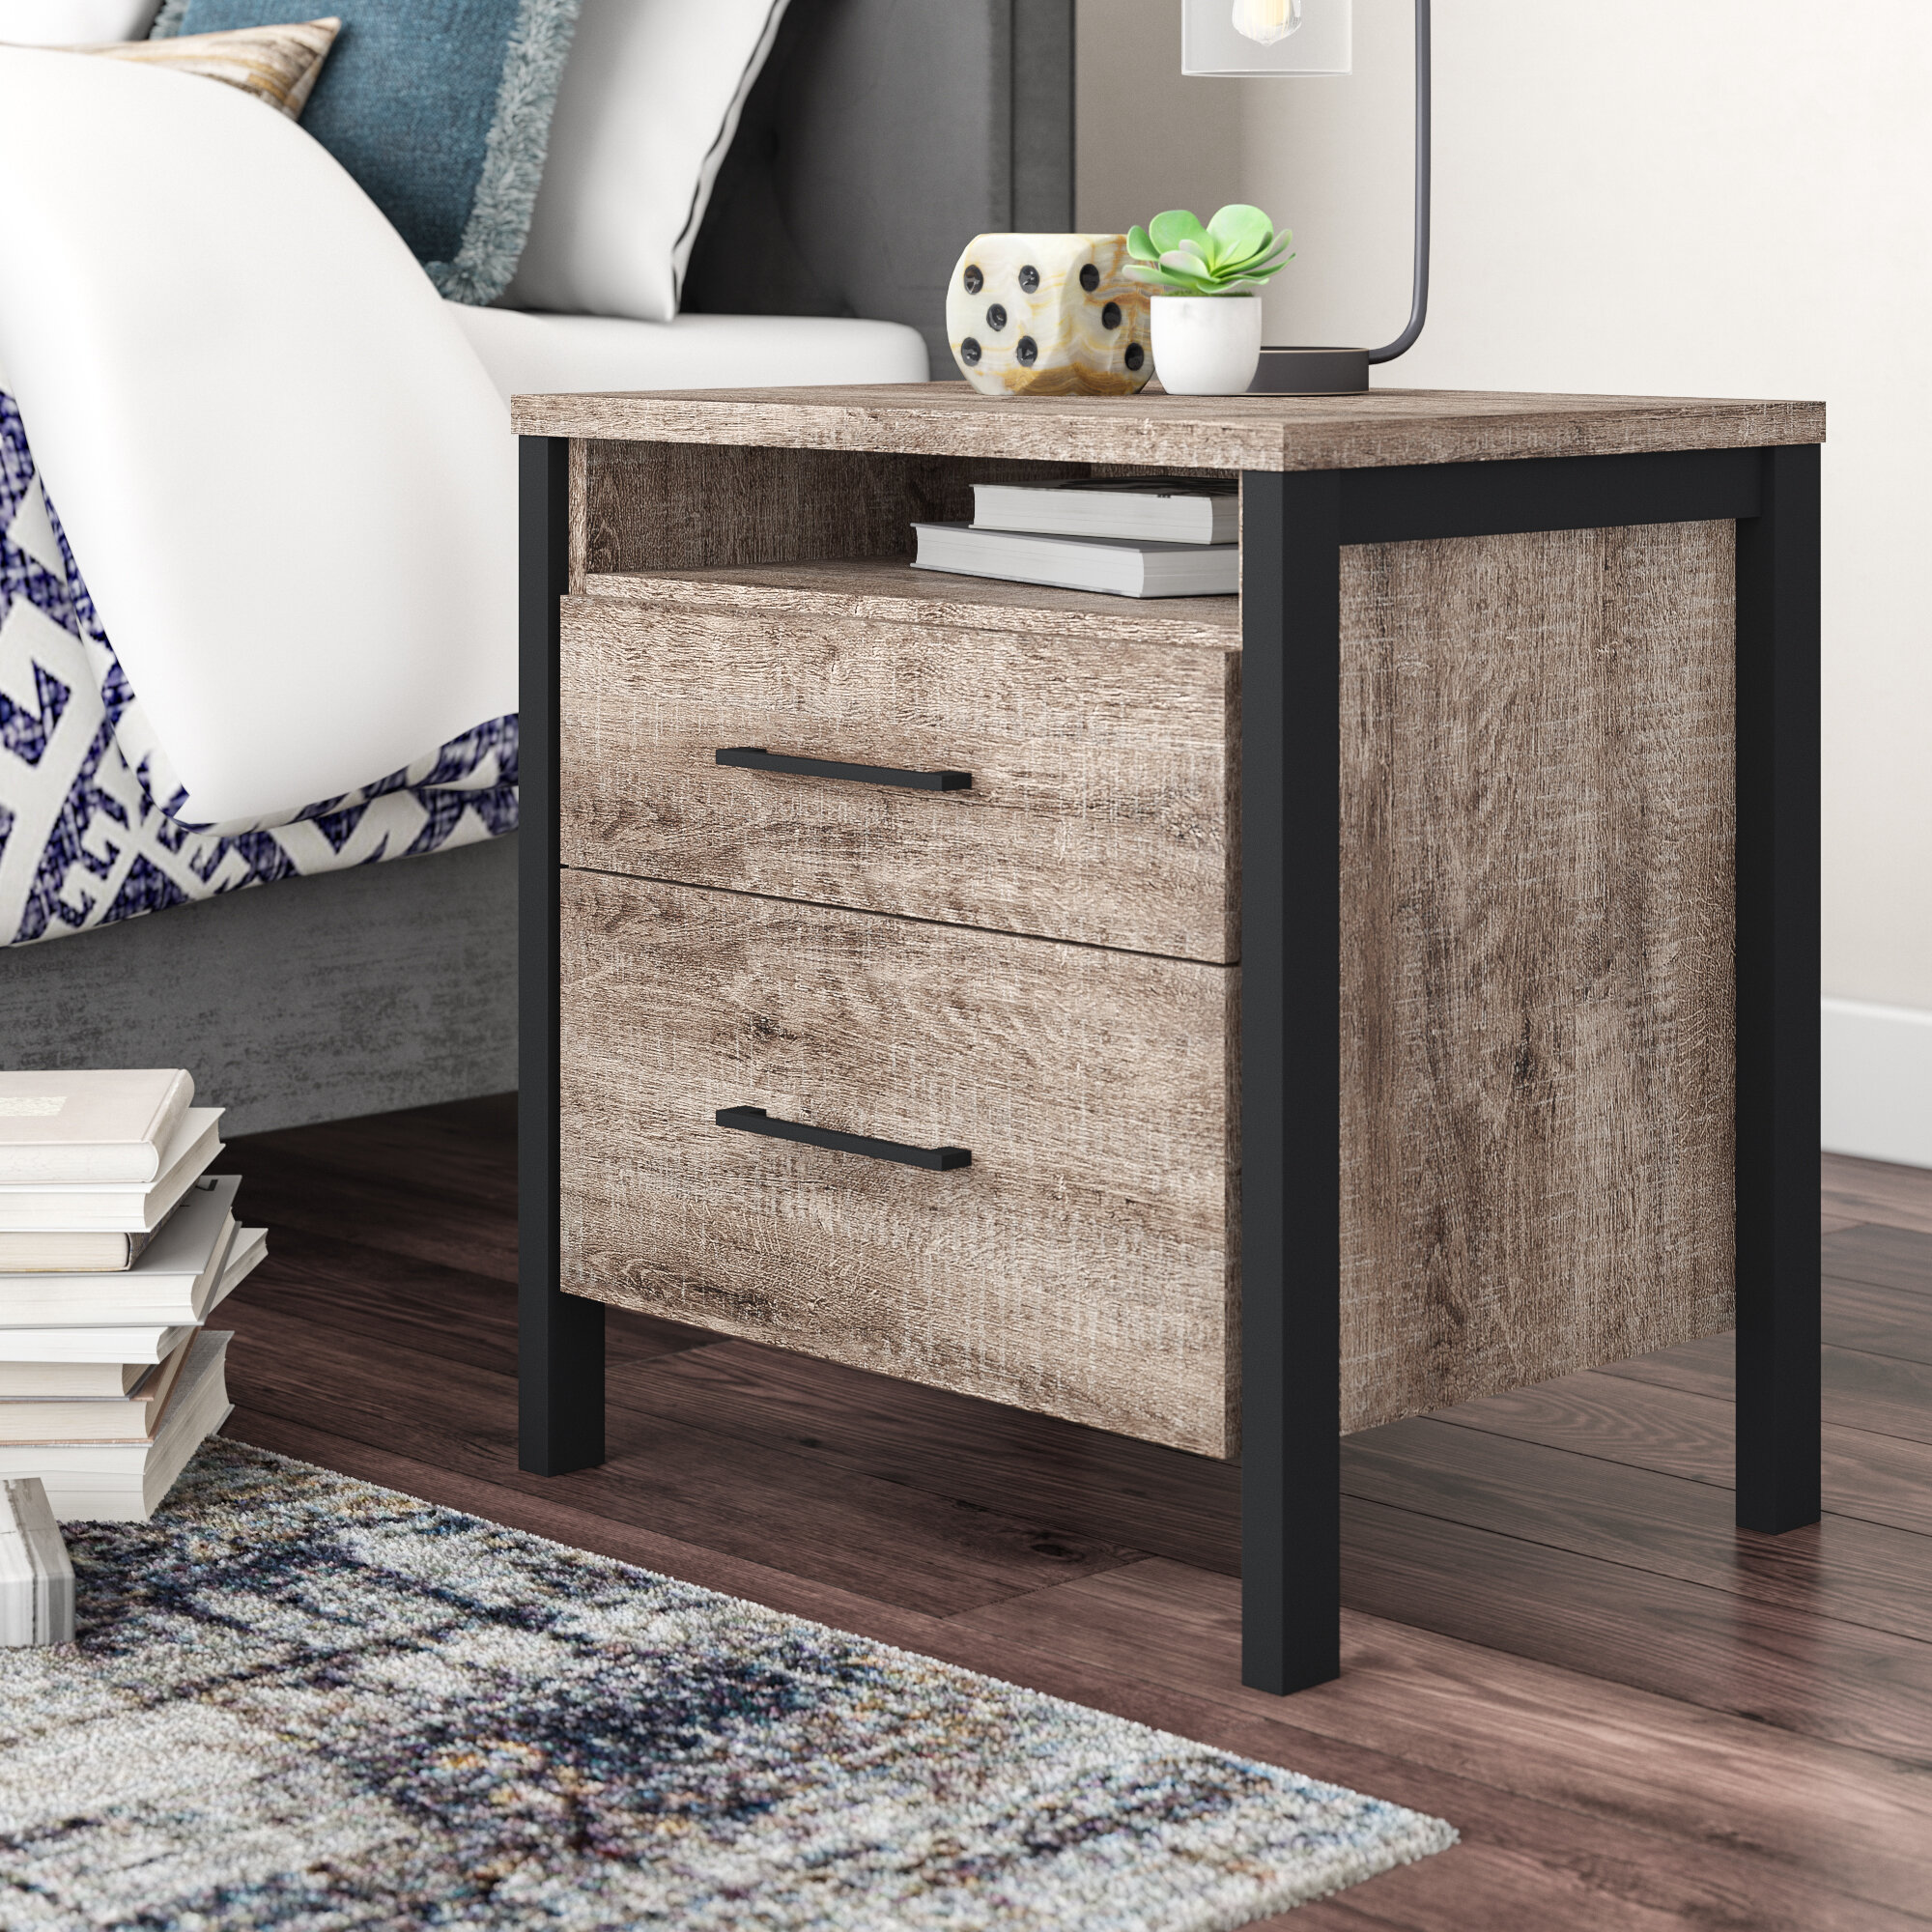 Nightstands Home Kitchen South Shore Gravity 2 Drawer Nightstand Ebony With Satin Nickel Finish Handles